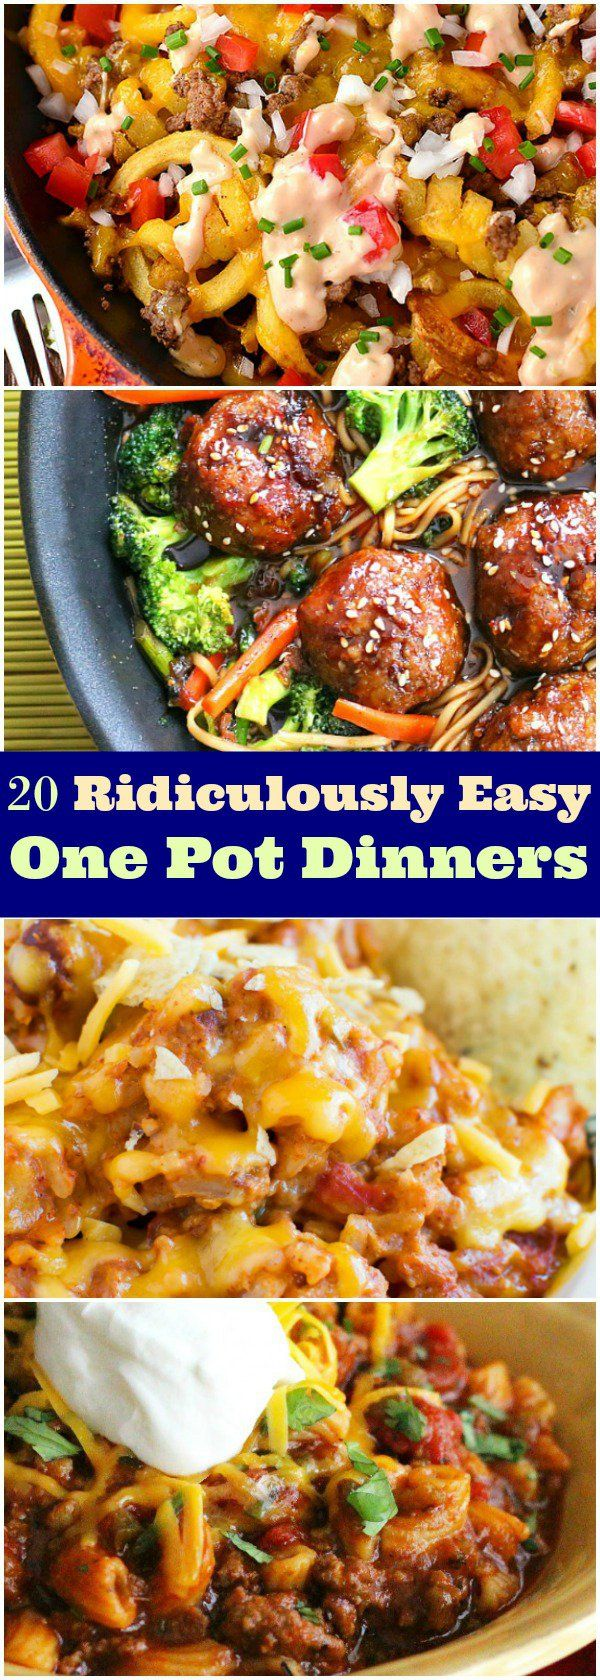 20 Ridiculously Easy One Pot Dinners You Will Love